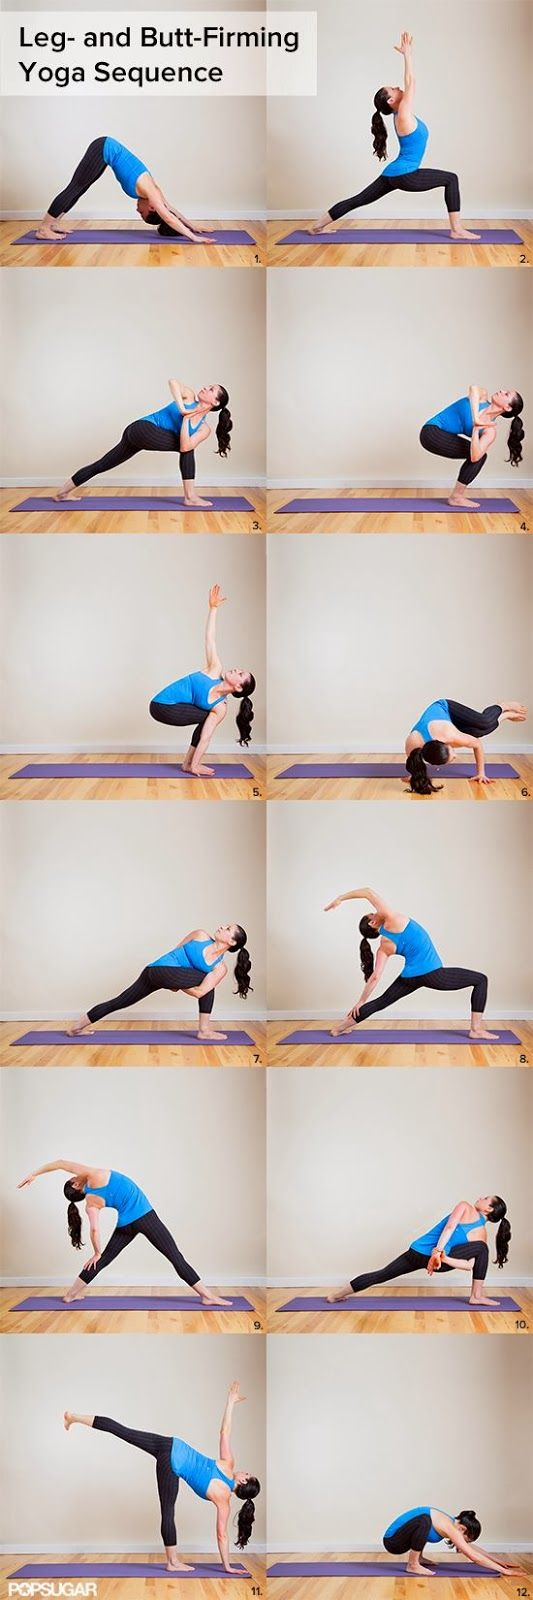 Leg and Butt firming yoga sequence          #yoga           http://www.atalskinsolutions.com/